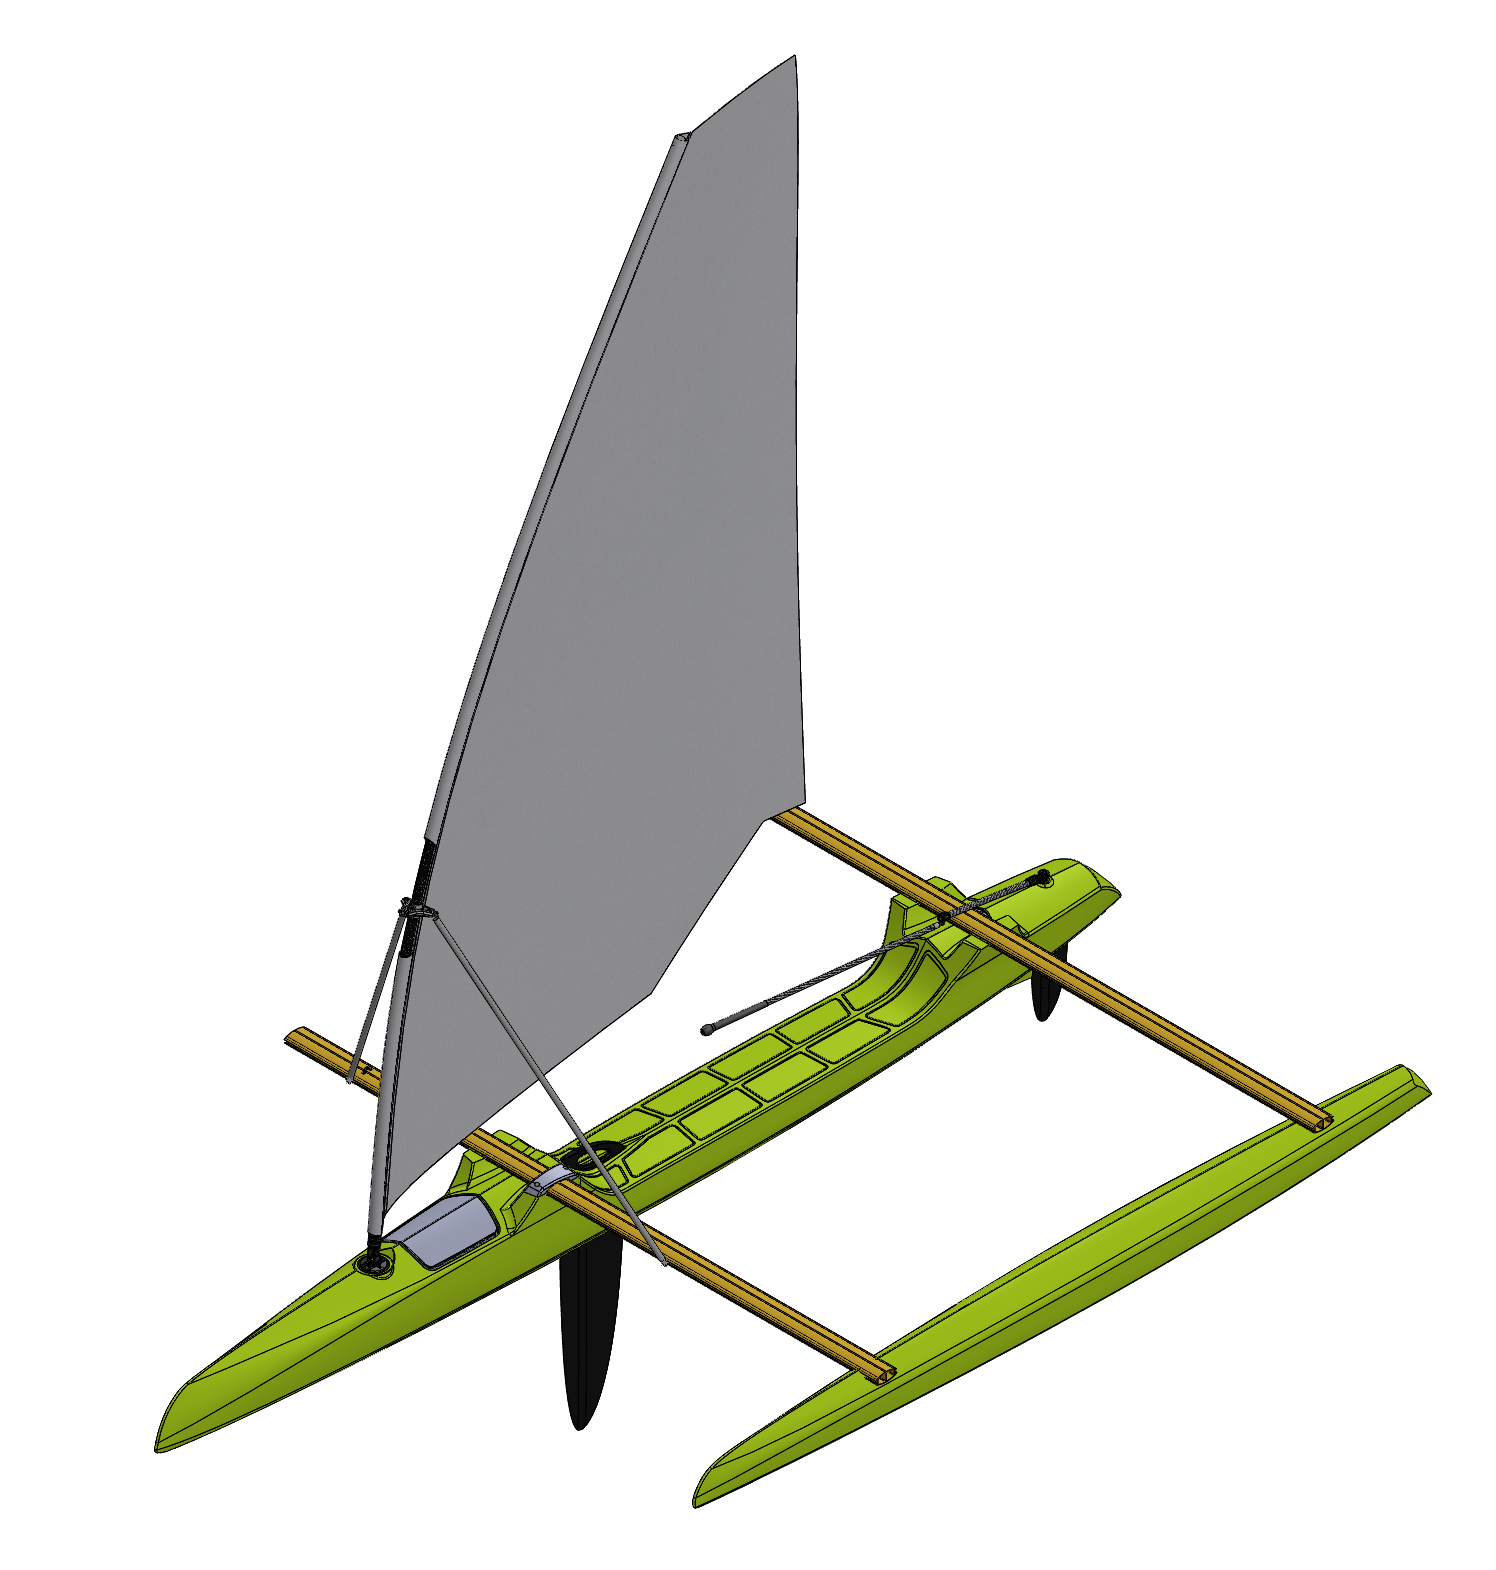 Preliminary CAD model of a rototmolded tacking outrigger with a windsurfer rig.